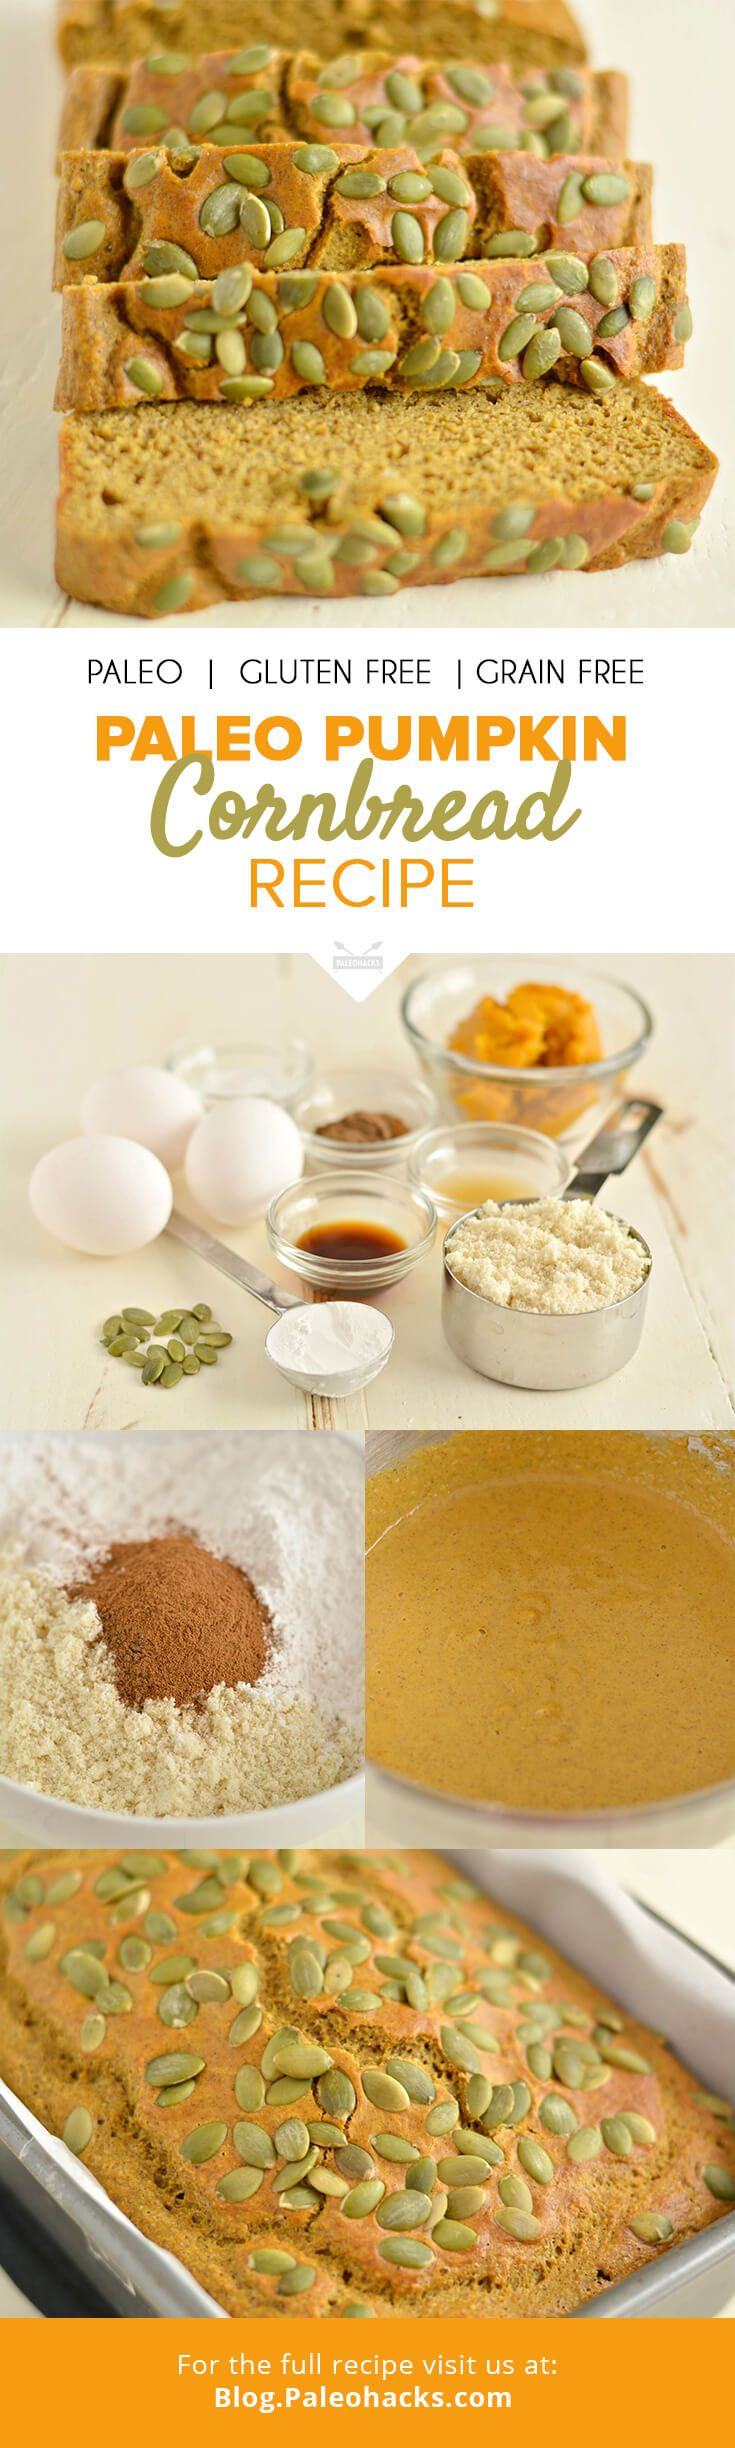 246 best eat like a cavewoman paleo recipes images on pinterest pumpkin cornbread paleo foodpaleo forumfinder Choice Image